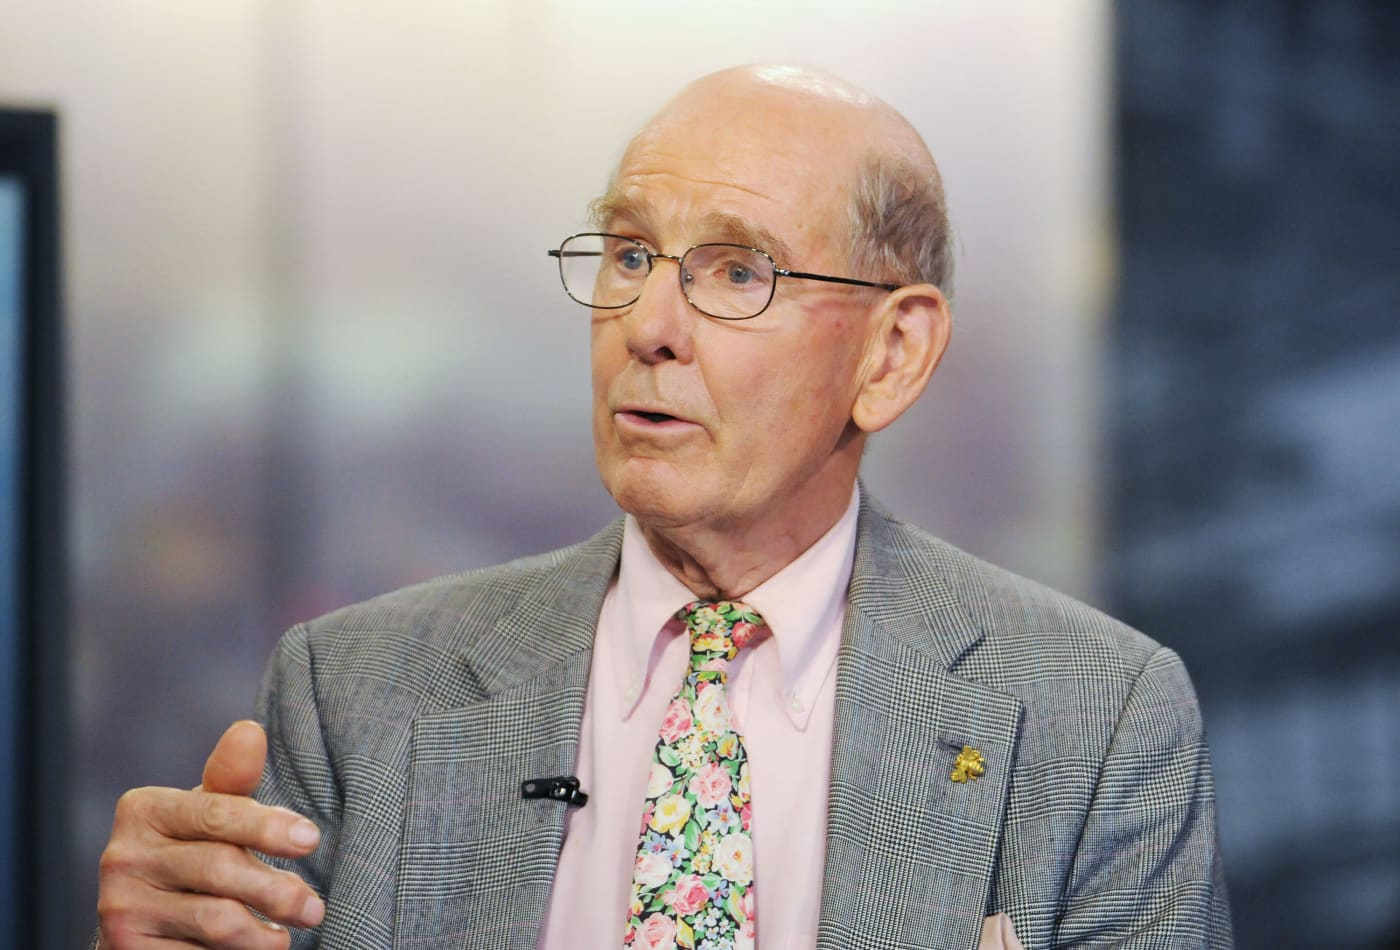 Financial analyst Gary Shilling says the stock market could see a 1930s-like decline